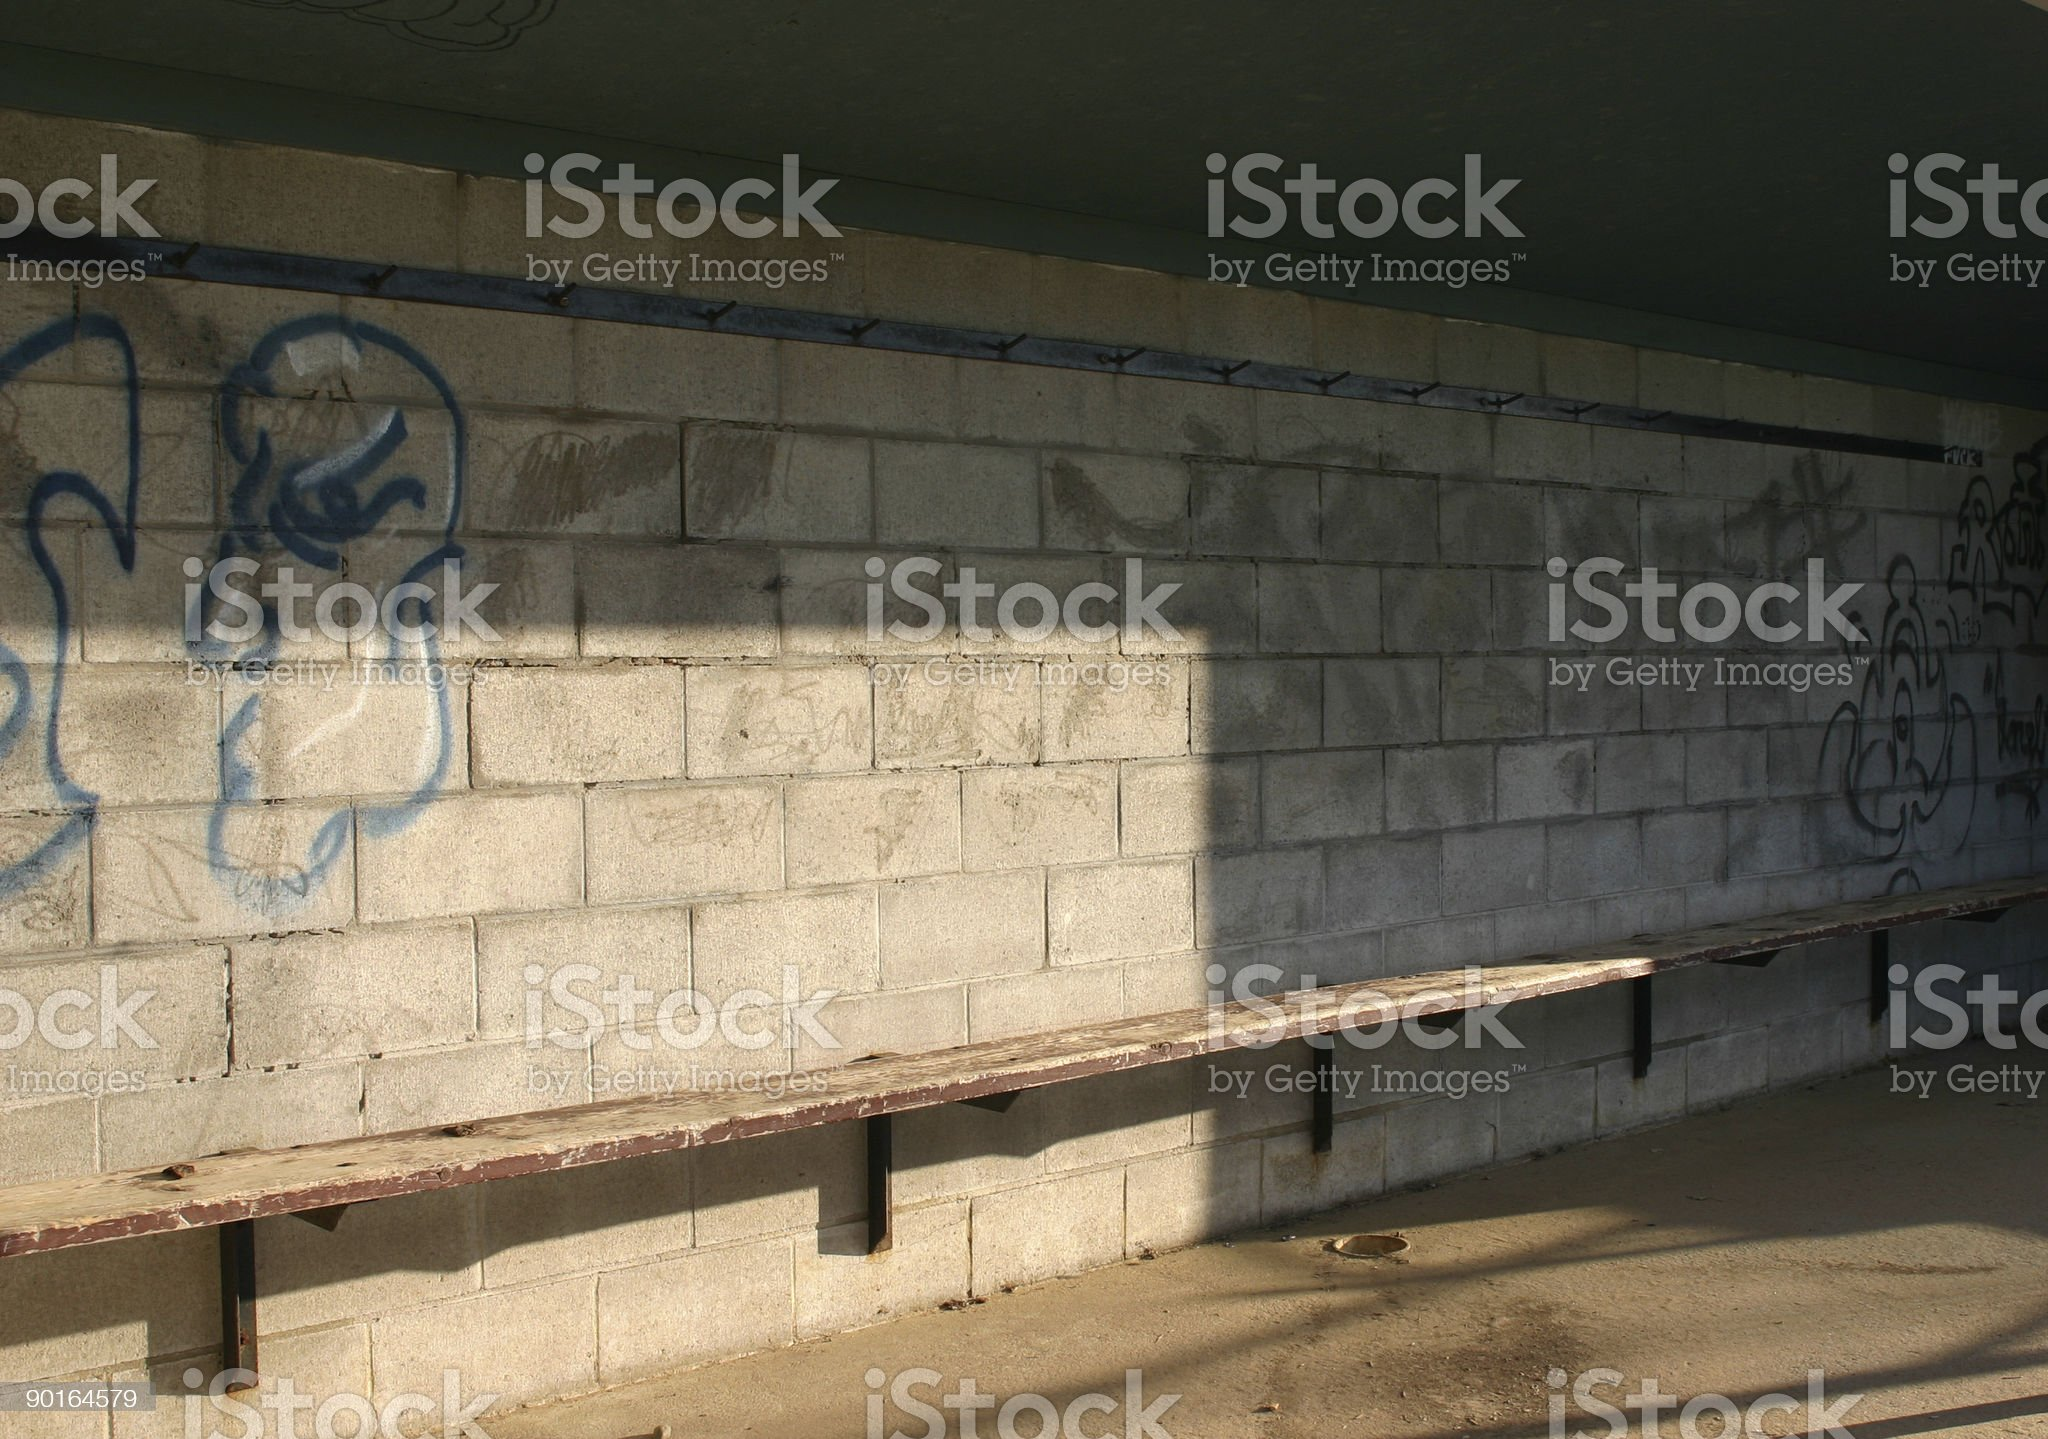 Baseball Dugout royalty-free stock photo